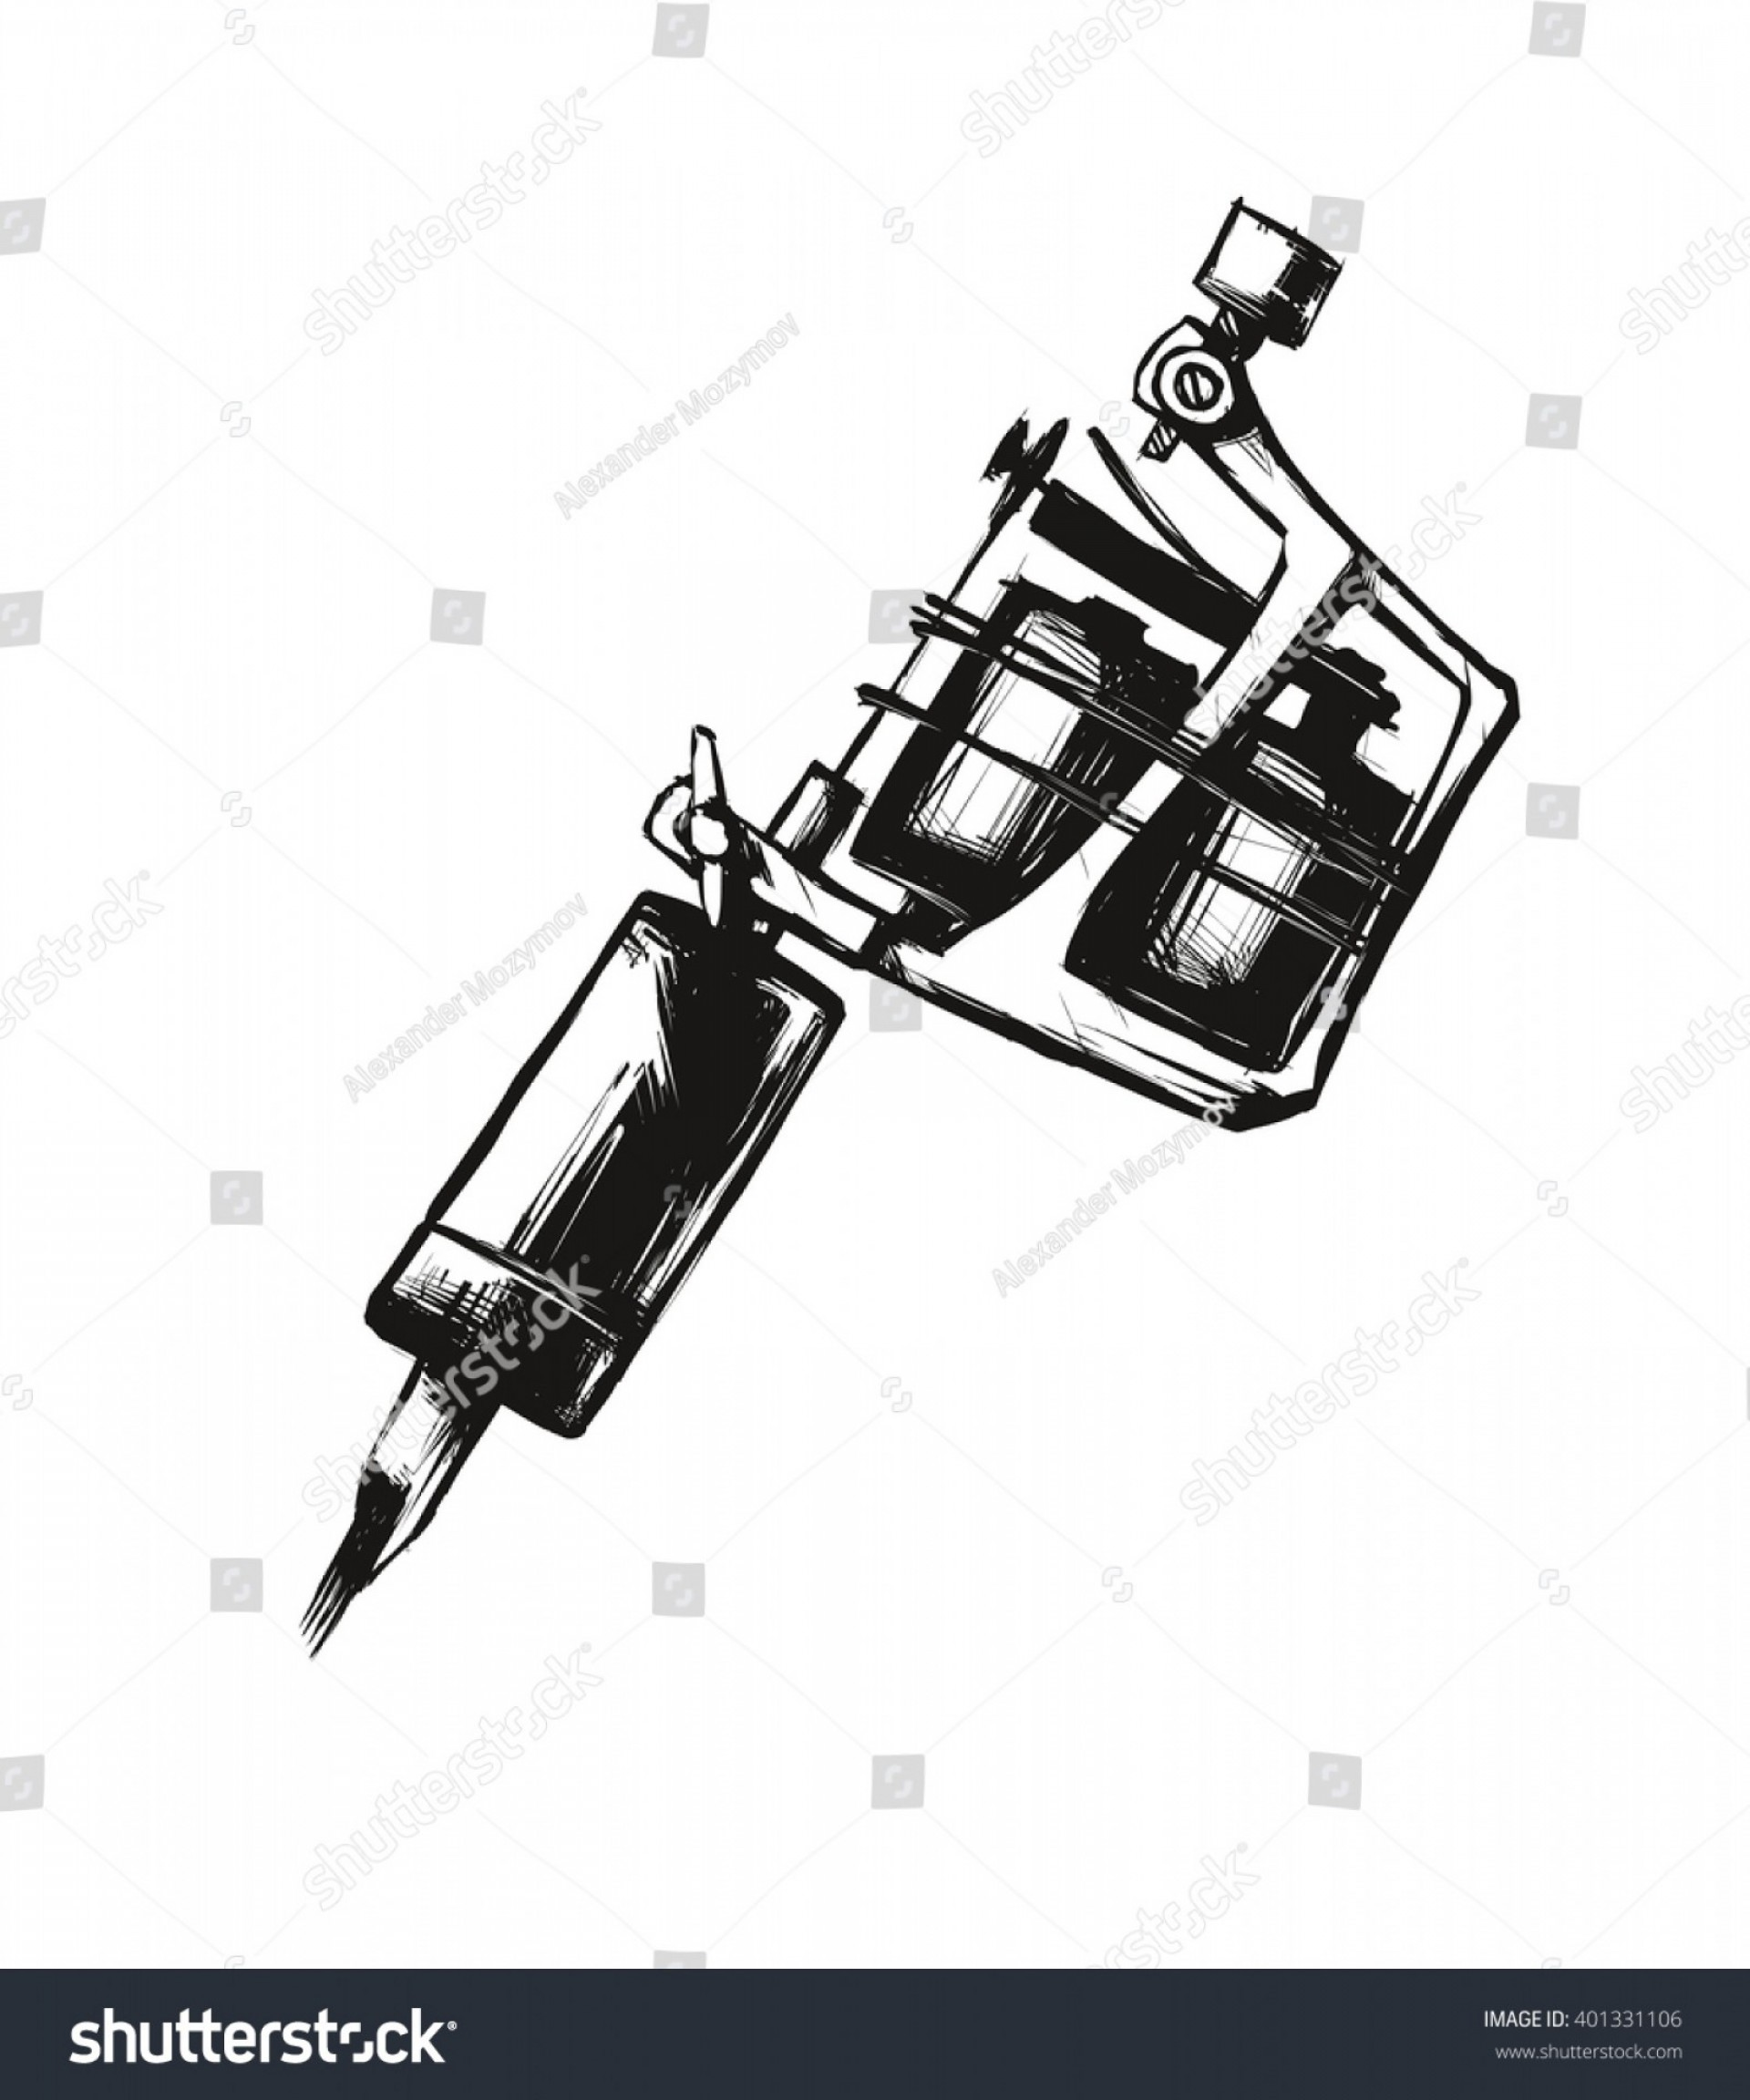 Vector Sport Spot: Tattoo Machine Vector Illustration On White